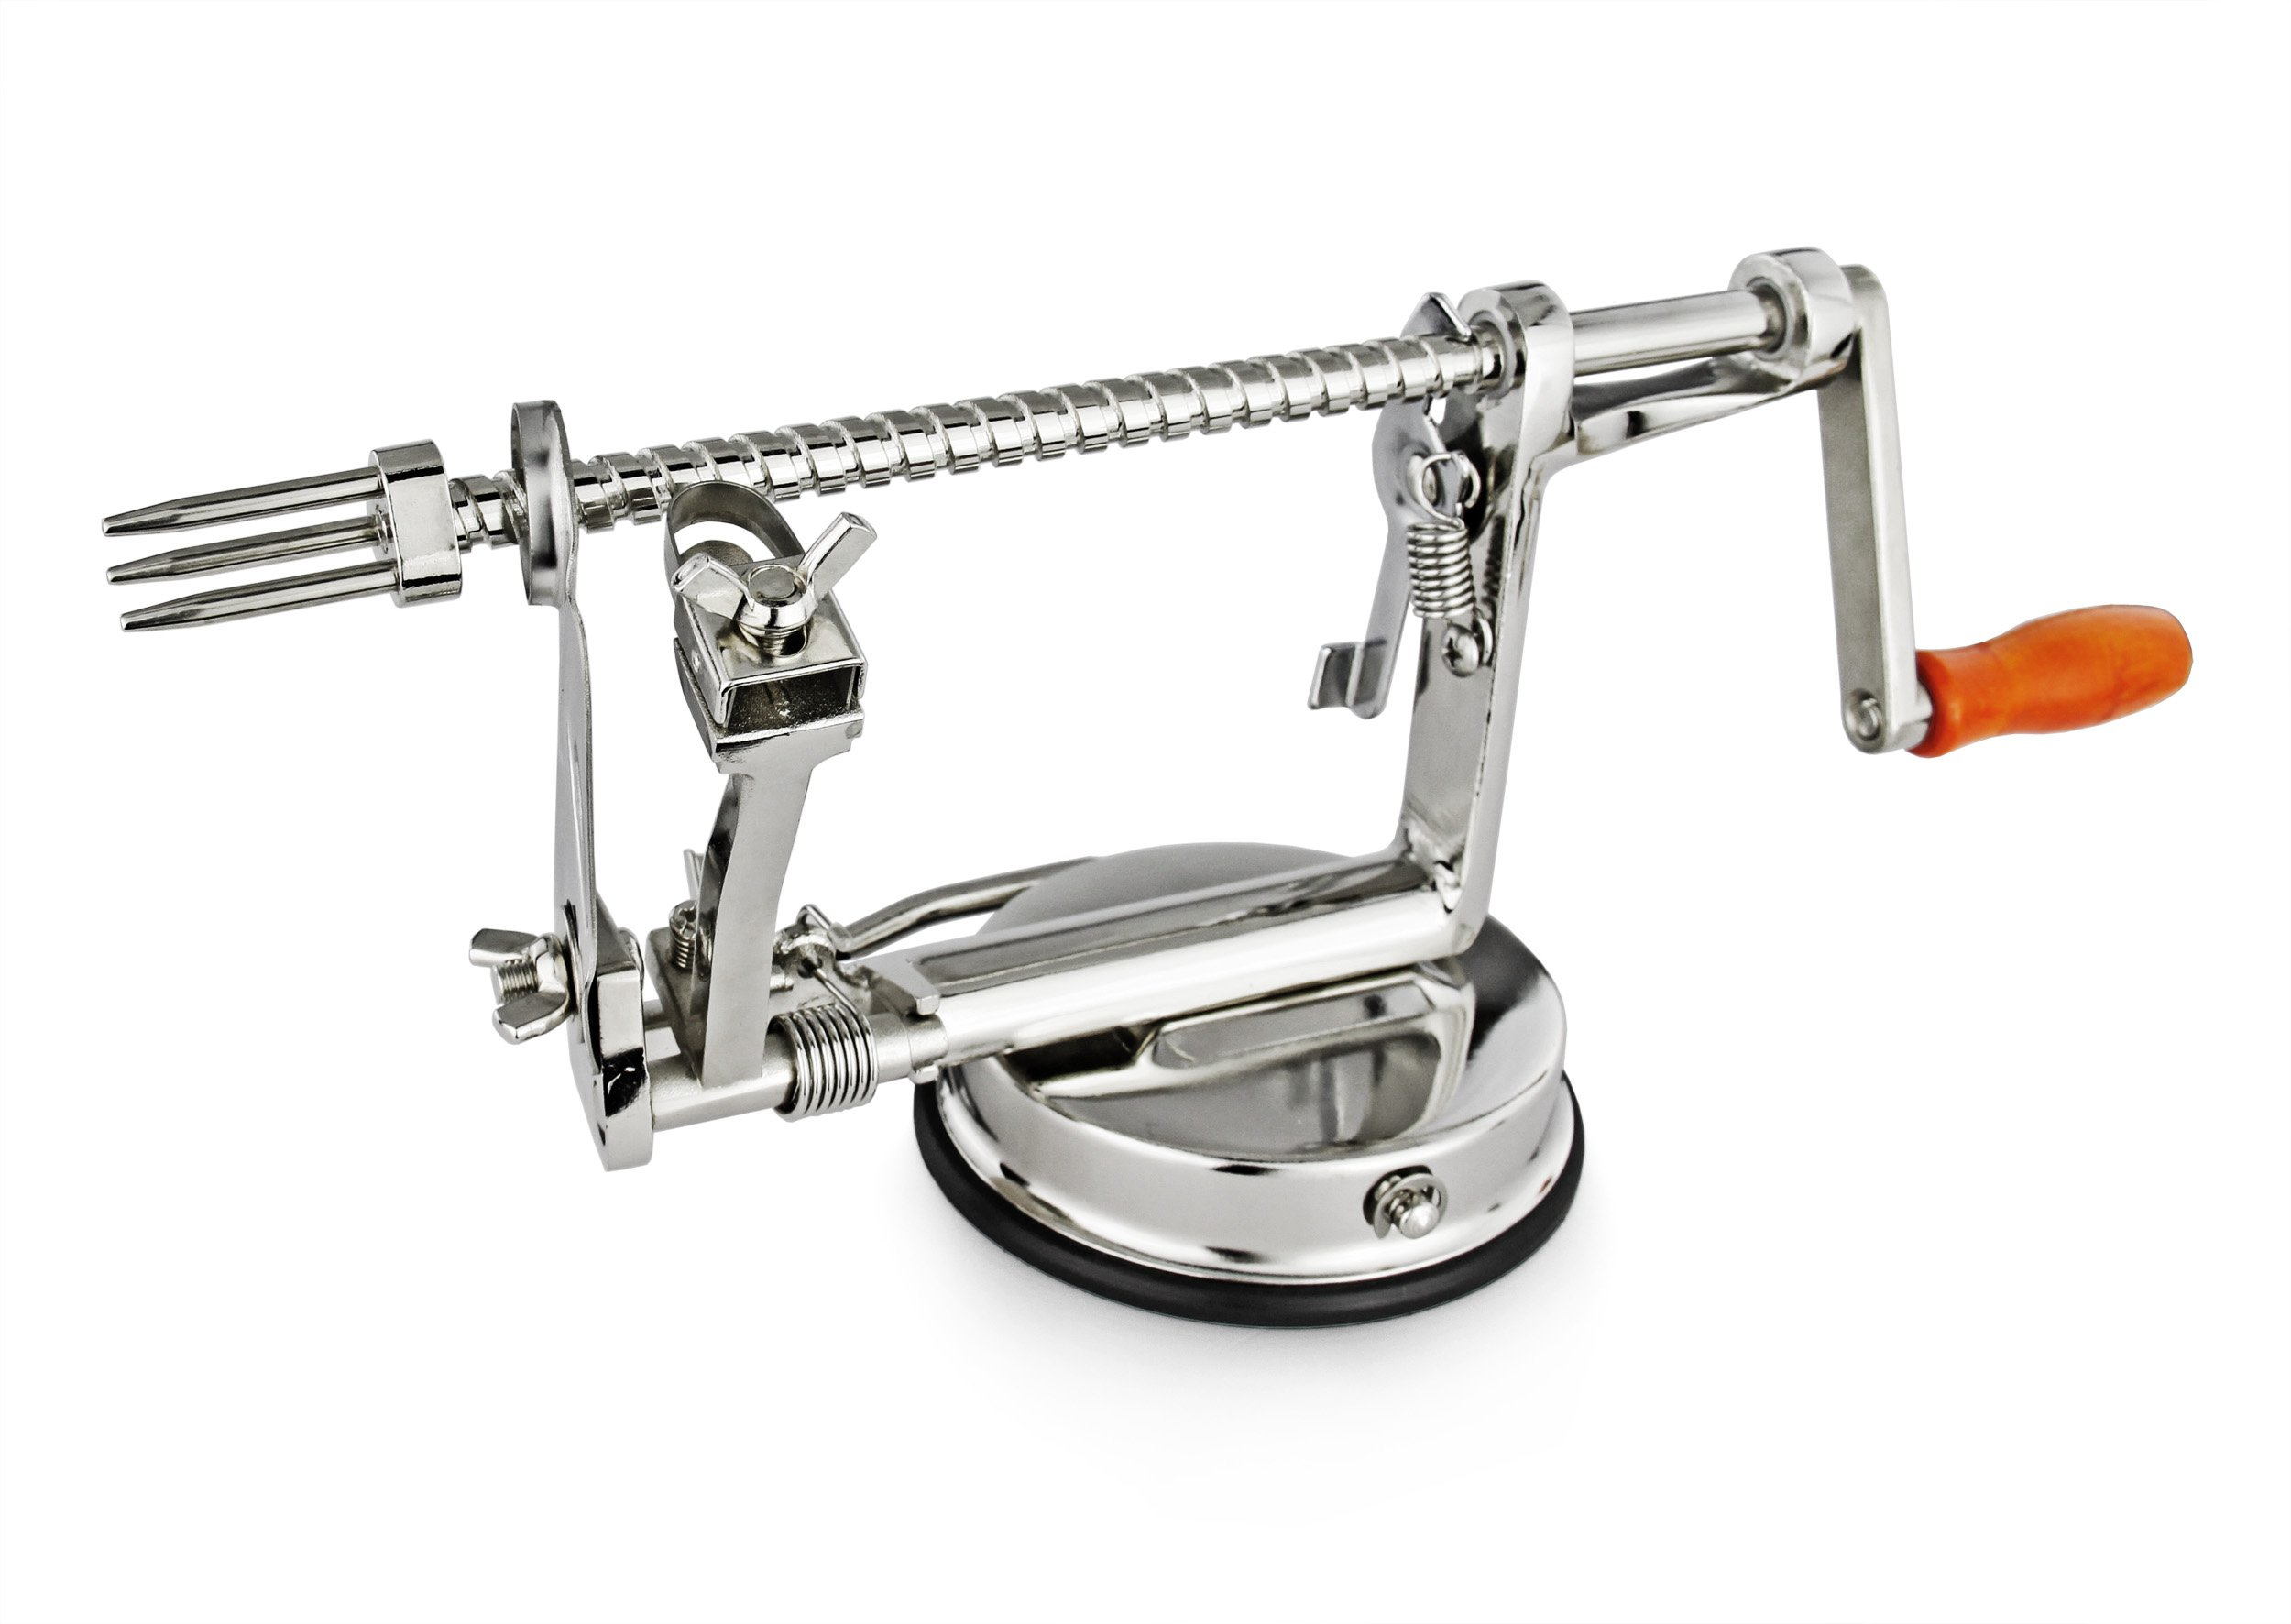 New Star Foodservice 42658 Deluxe Apple Peeler, Chrome Plated